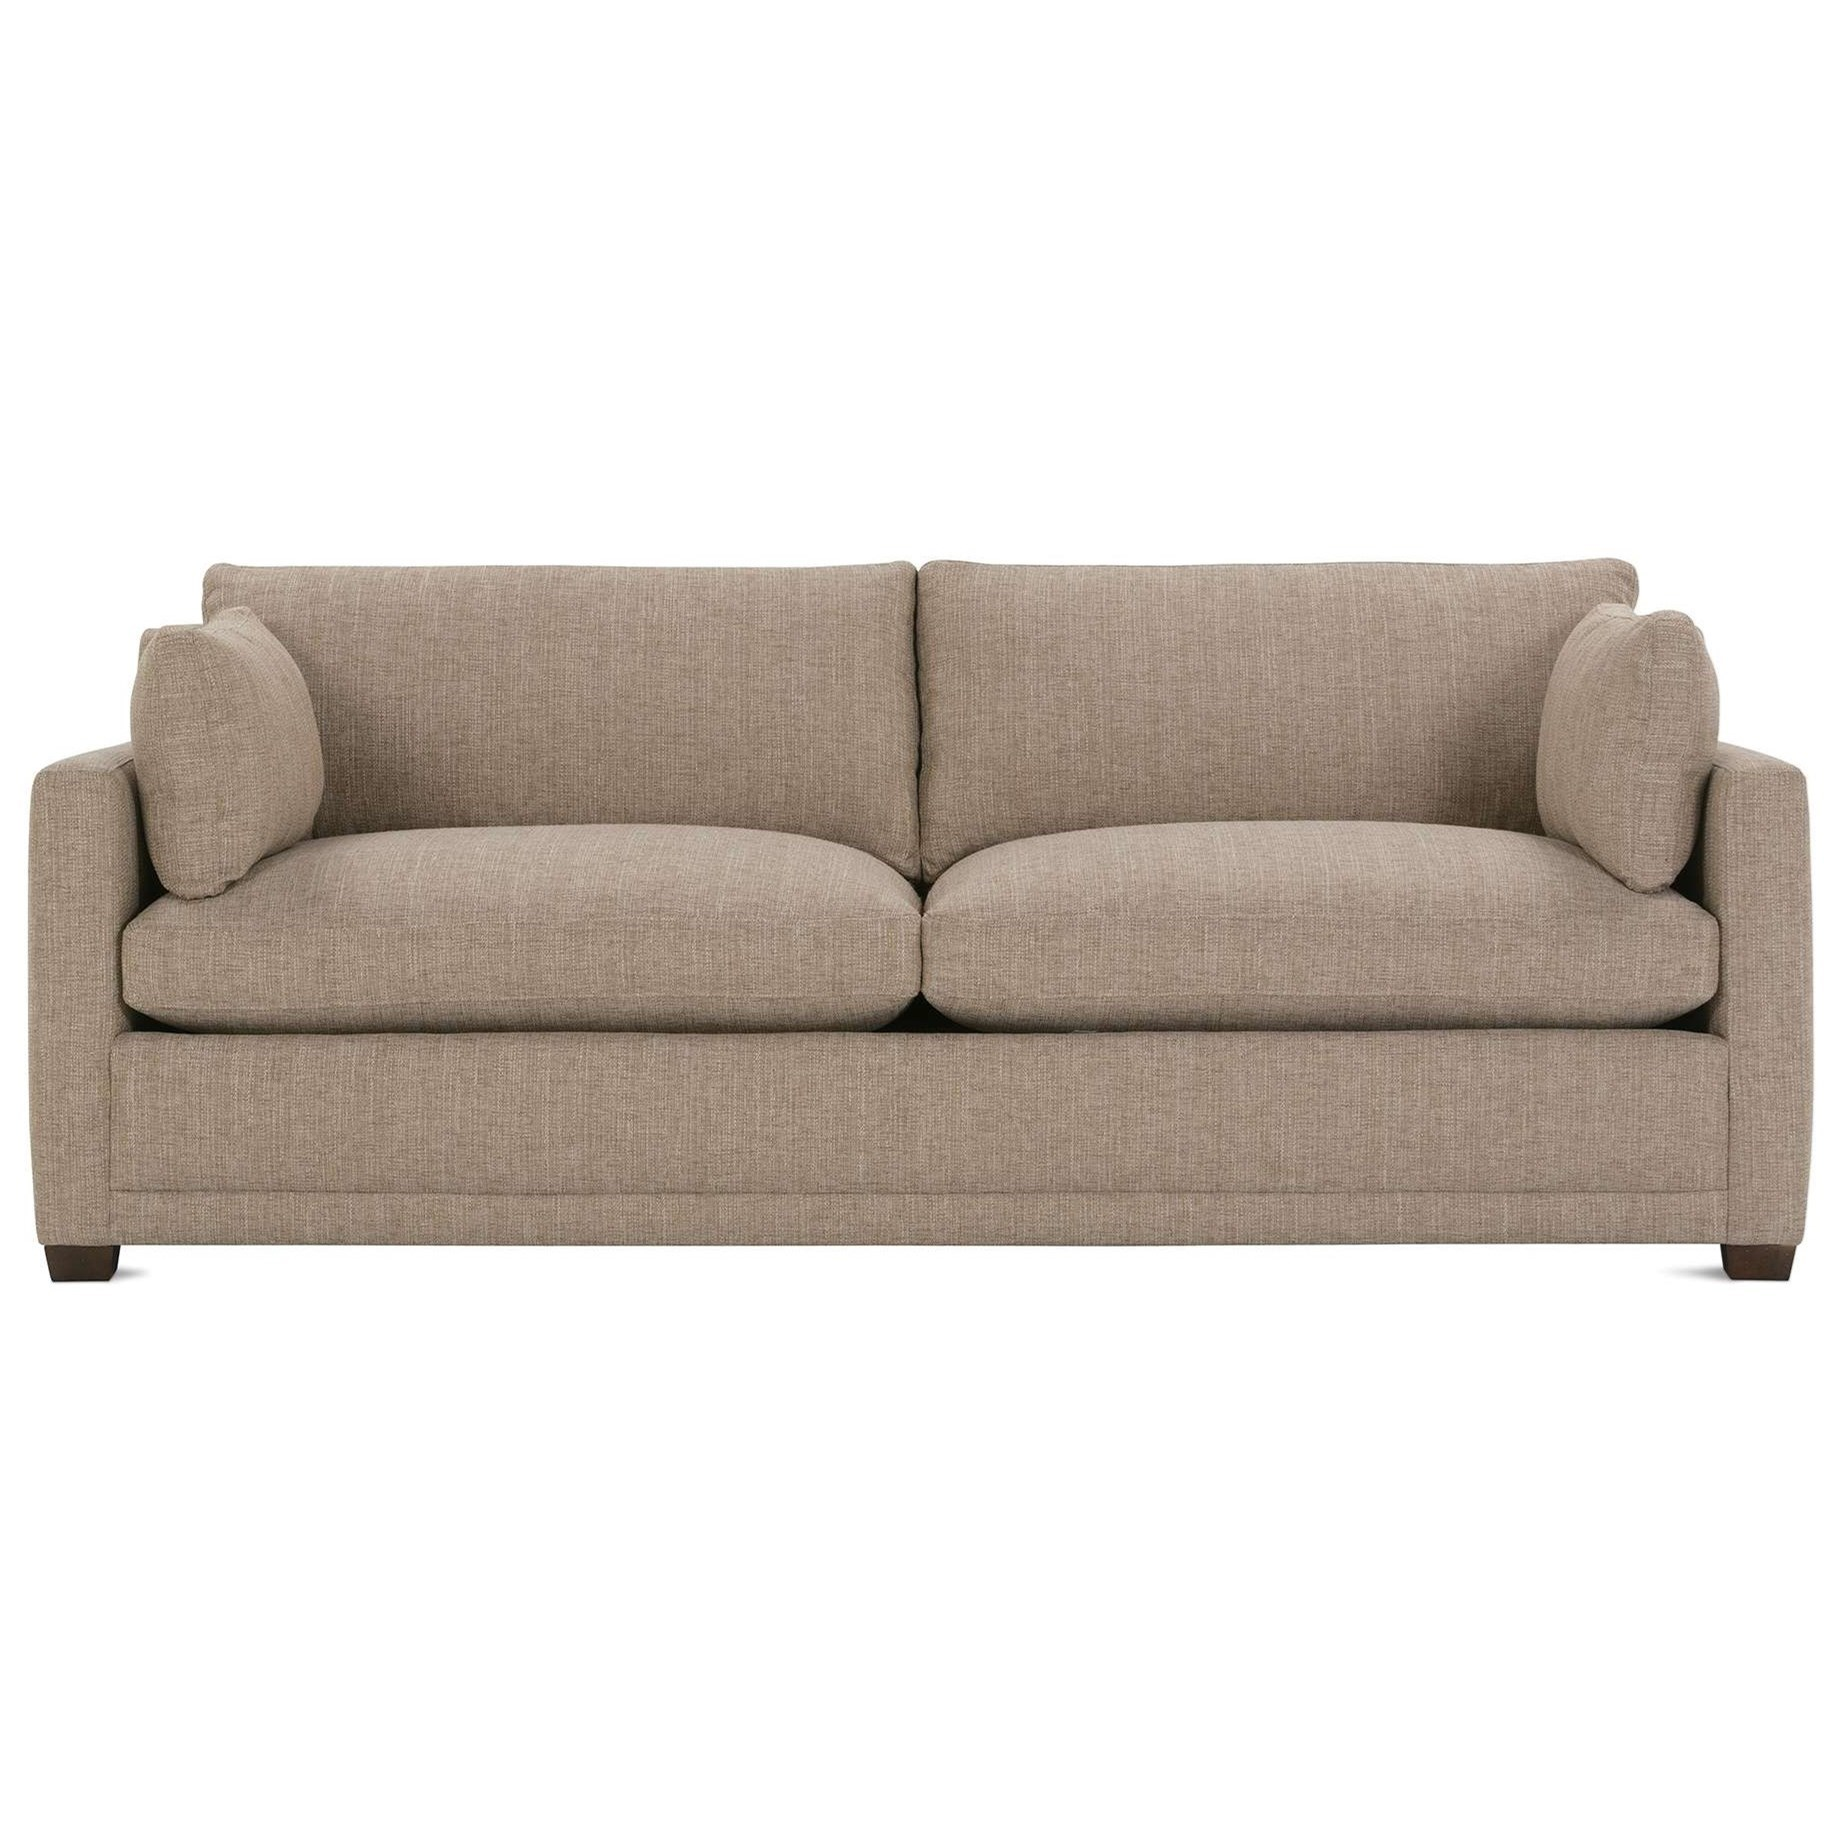 Sylvie Sofa by Robin Bruce at Steger's Furniture